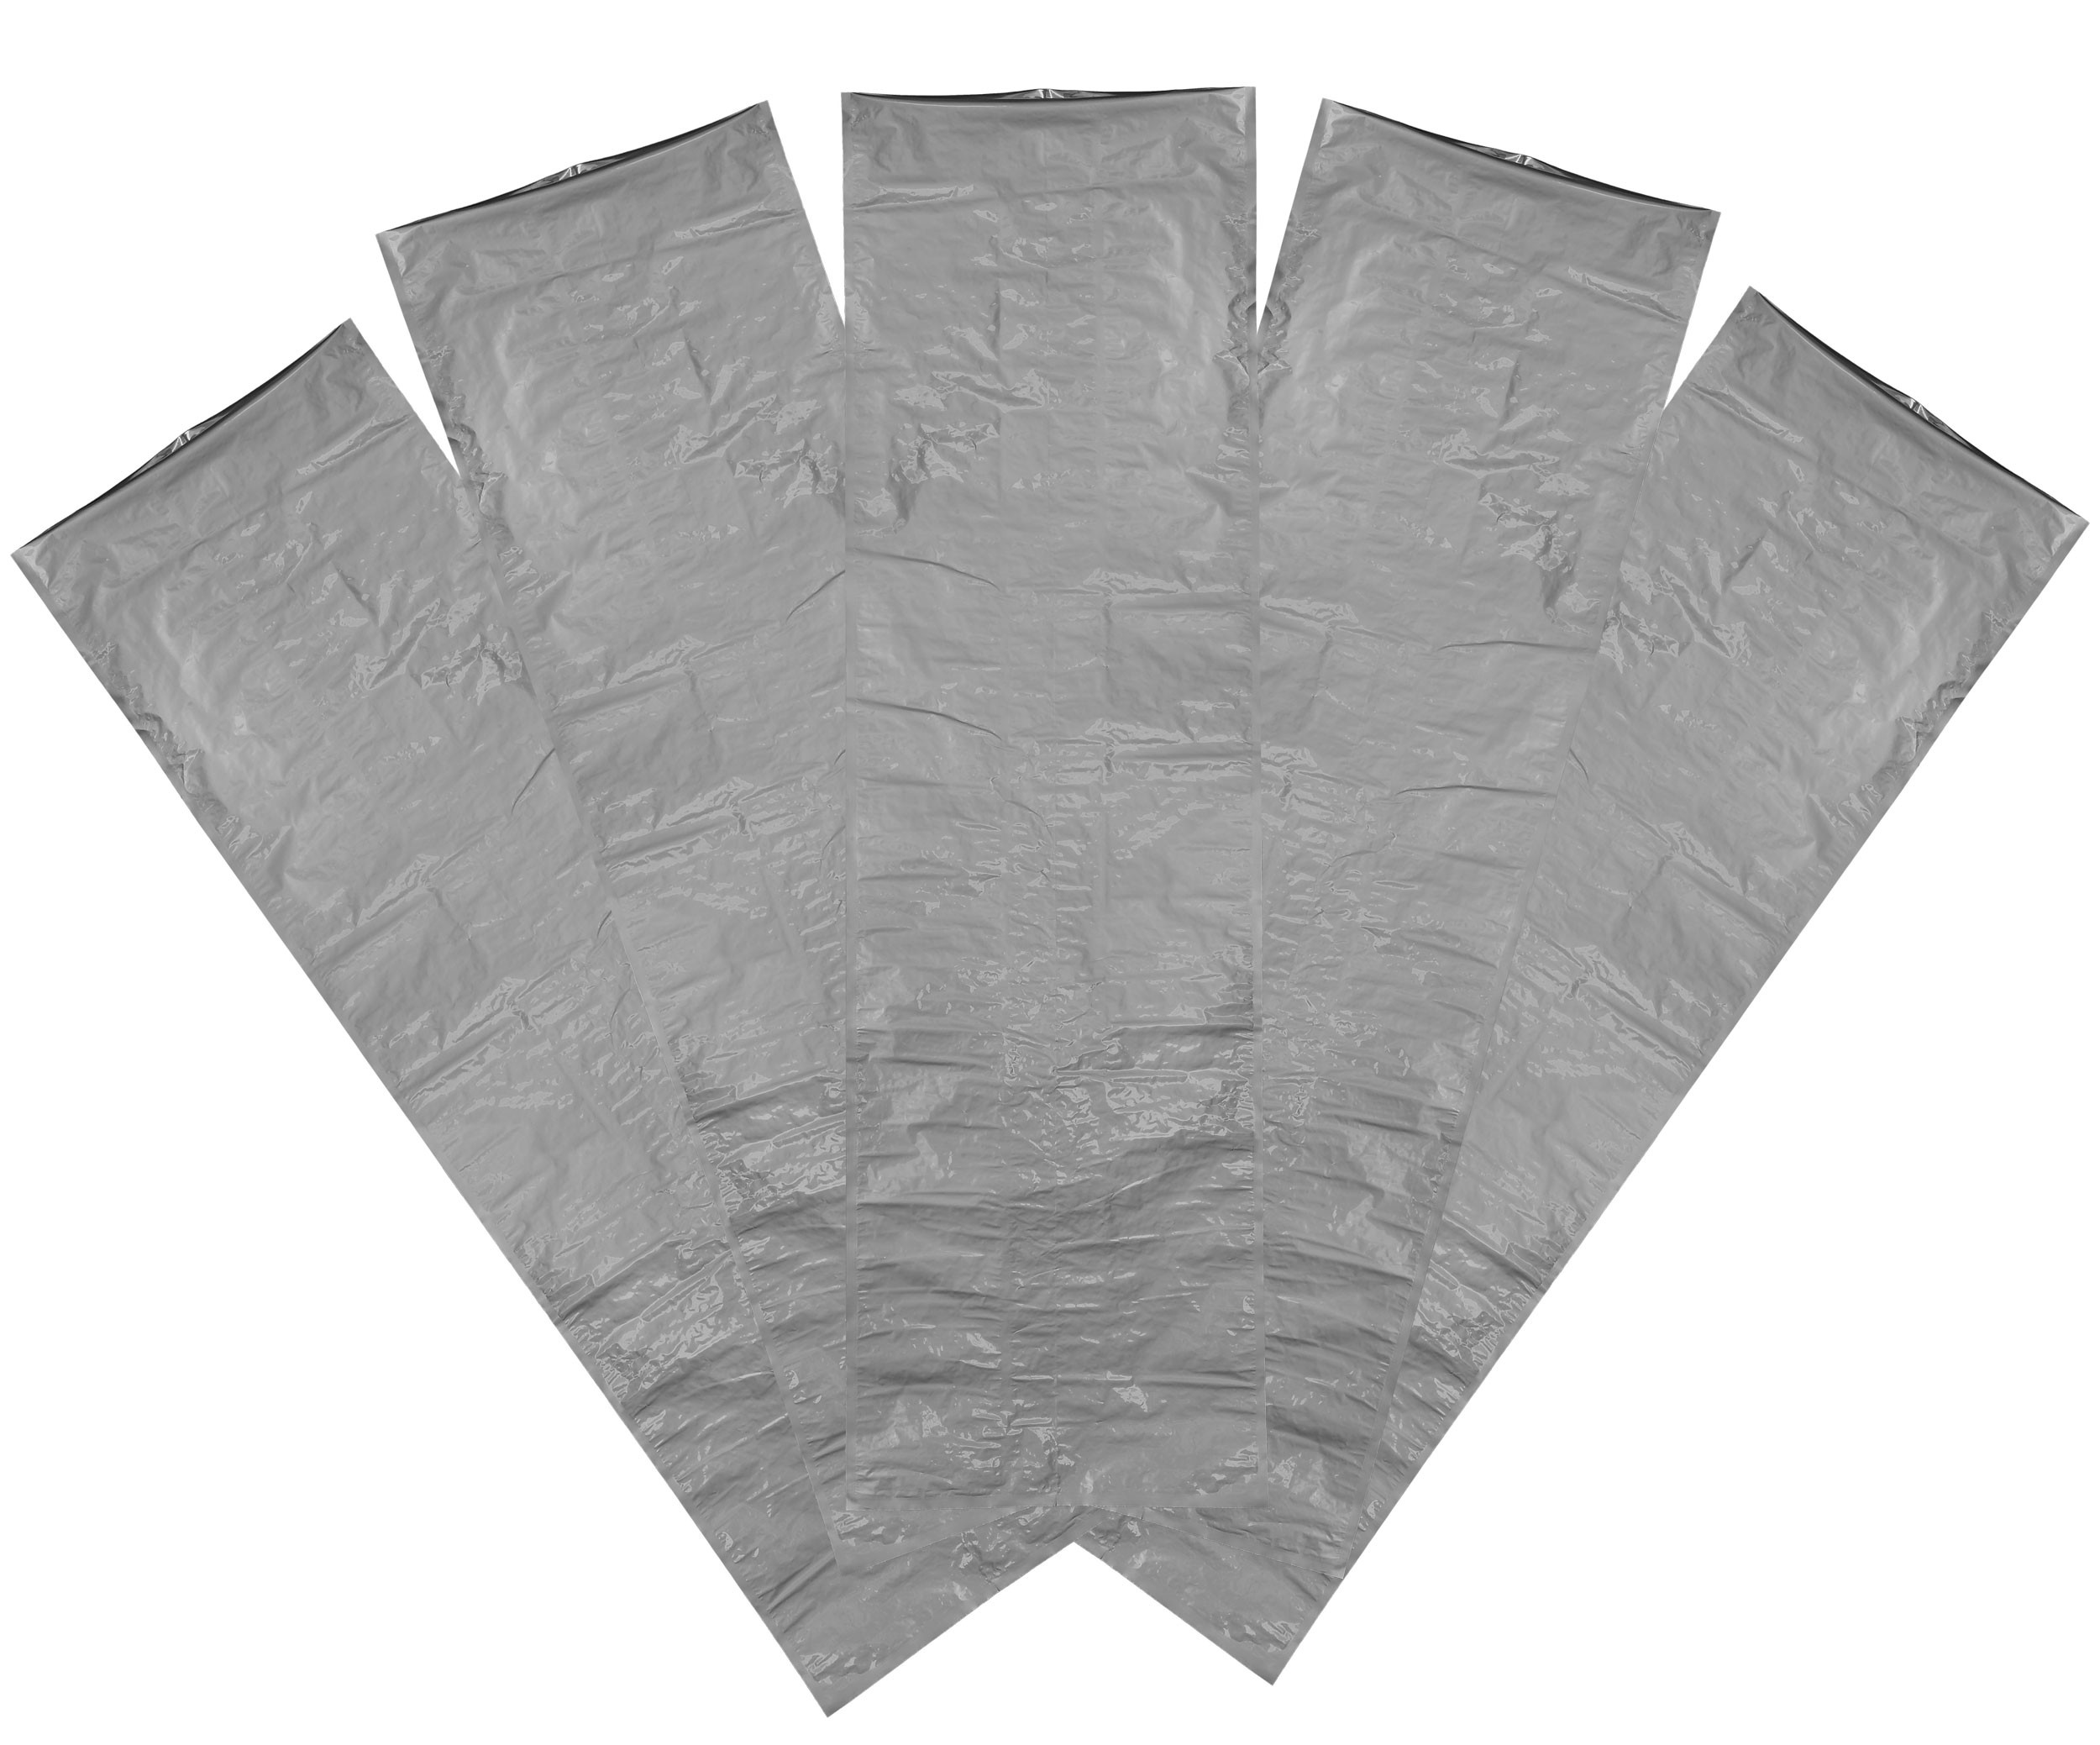 Five Side Sealing Aluminum Foil Bag, 5 pack